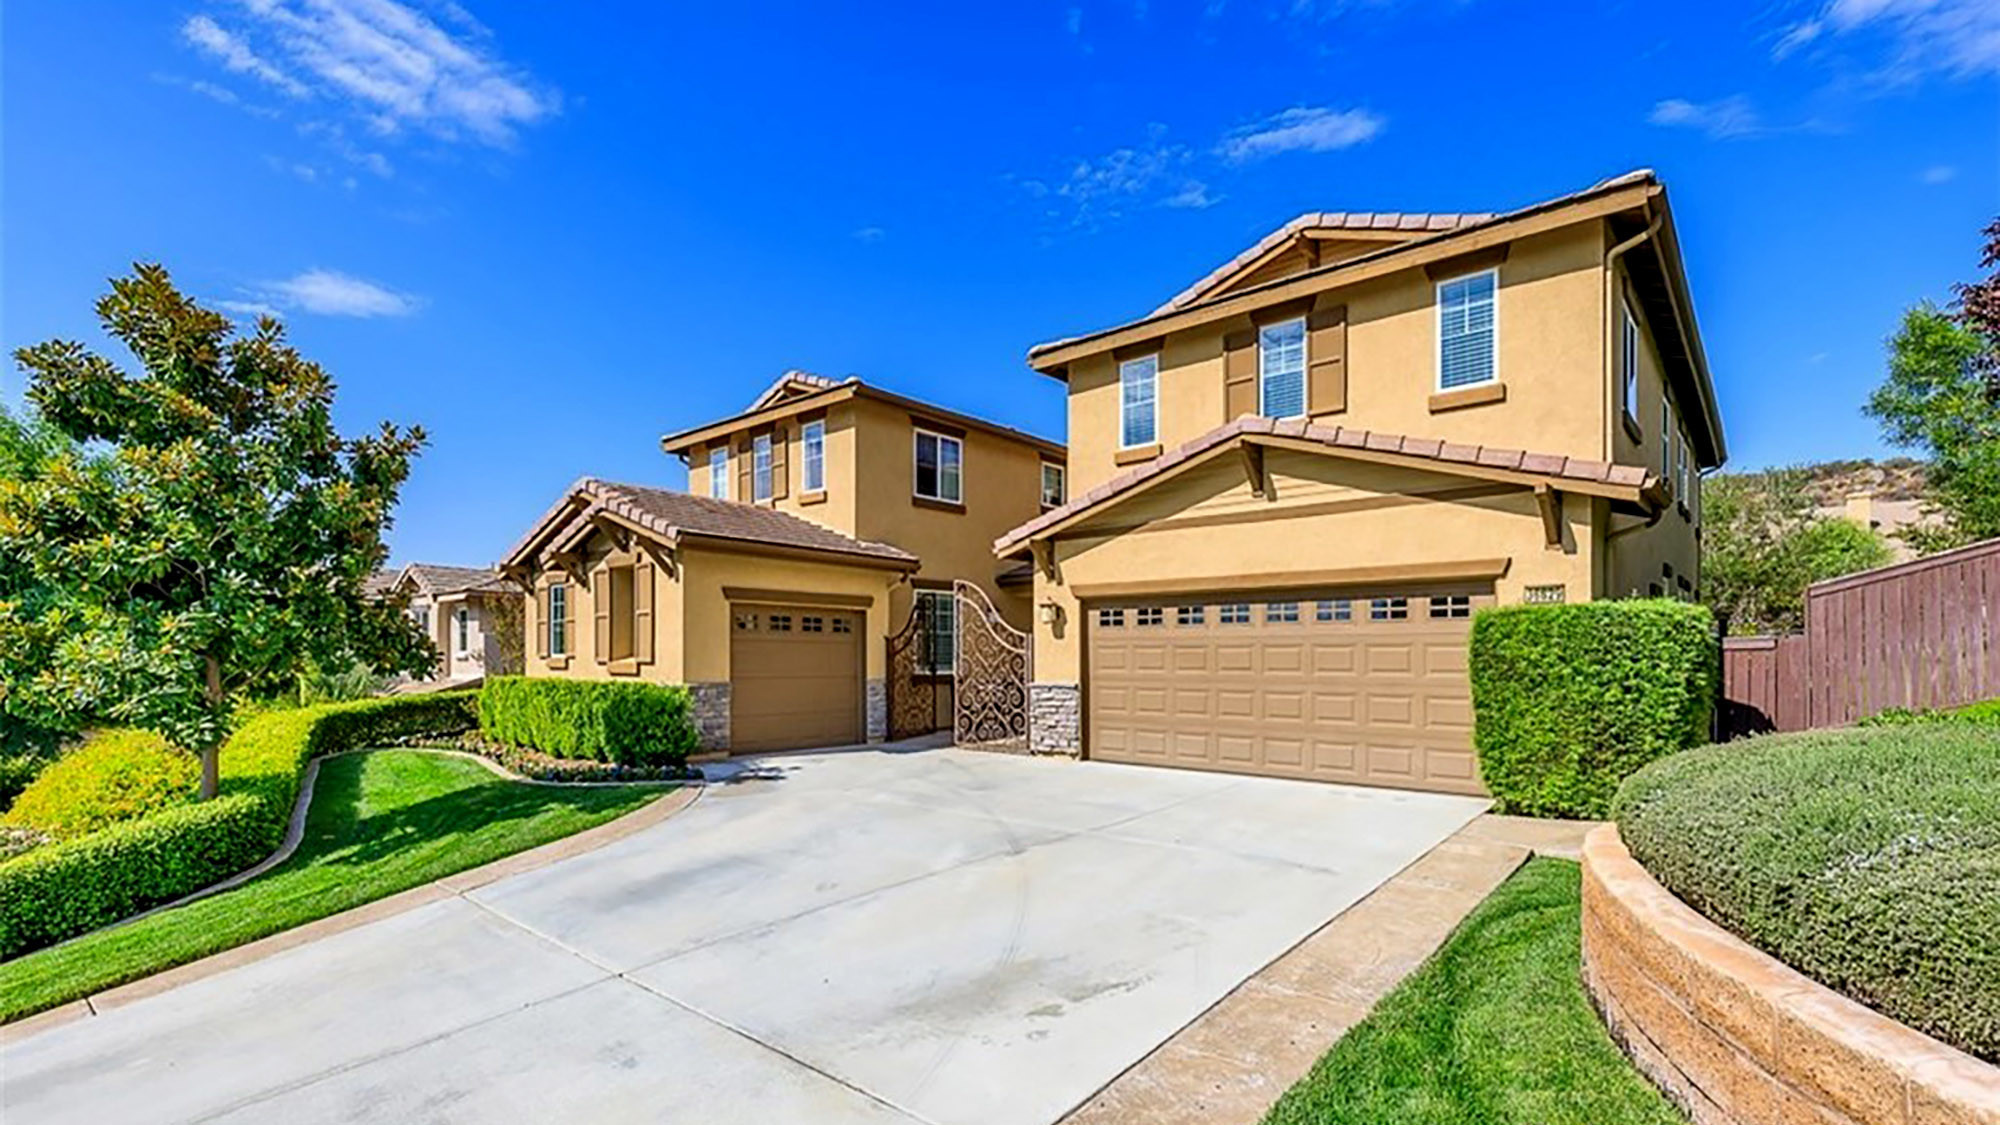 What $500,000 buys right now in three Riverside County communities